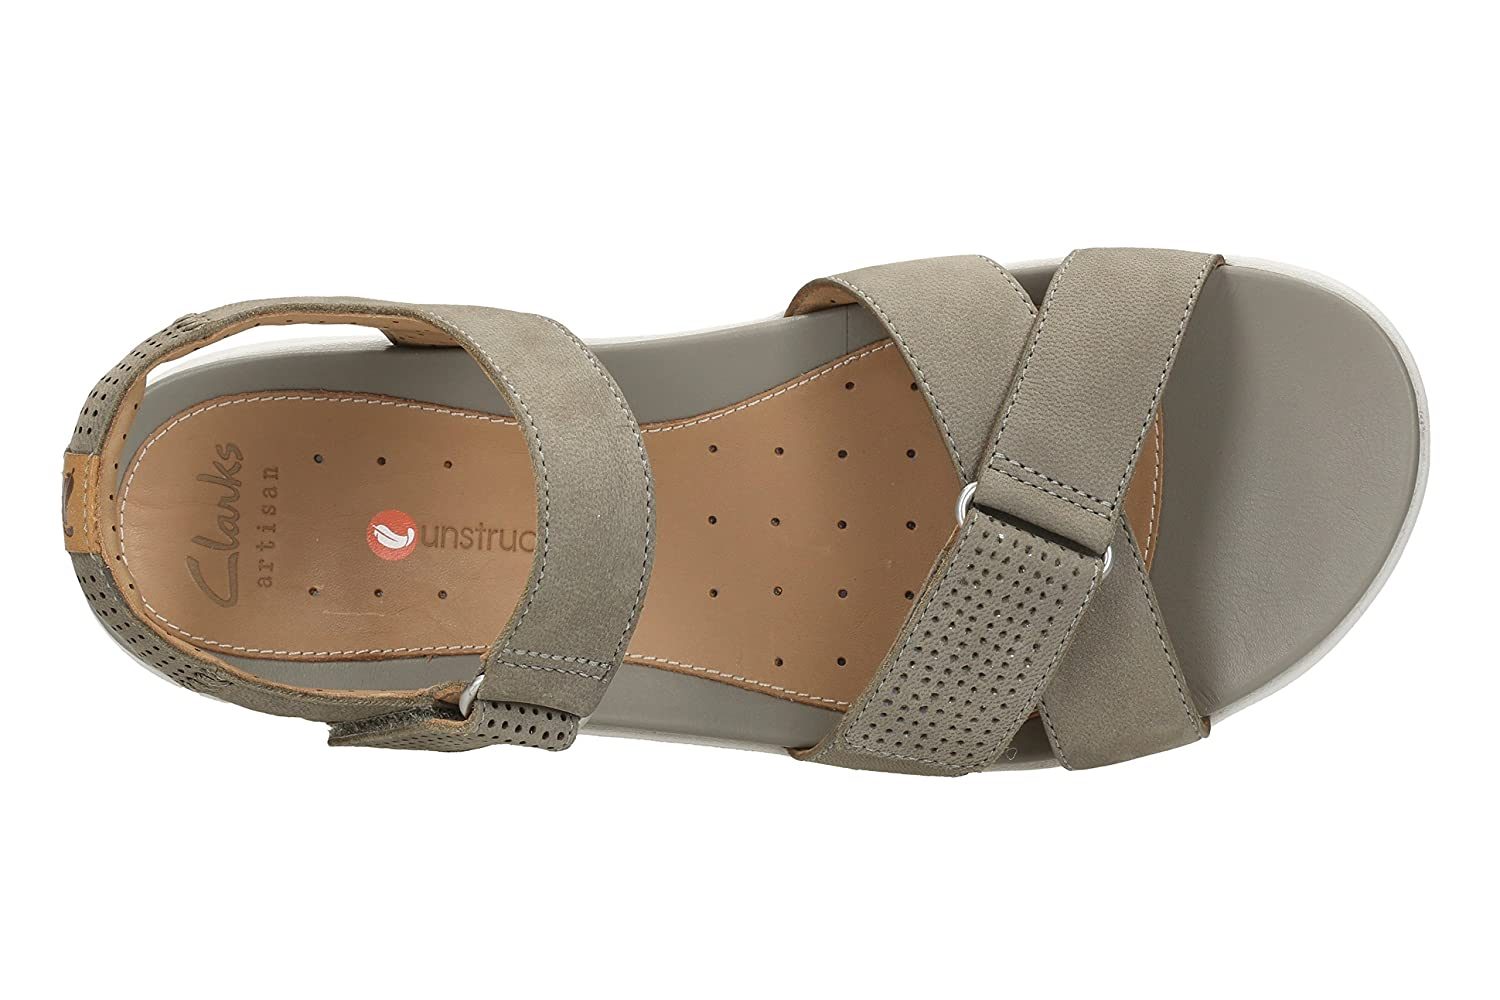 99b3c8b8d29 Clarks Un Saffron Nubuck Sandals in Sage Wide Fit Size 8  Amazon.co.uk   Shoes   Bags